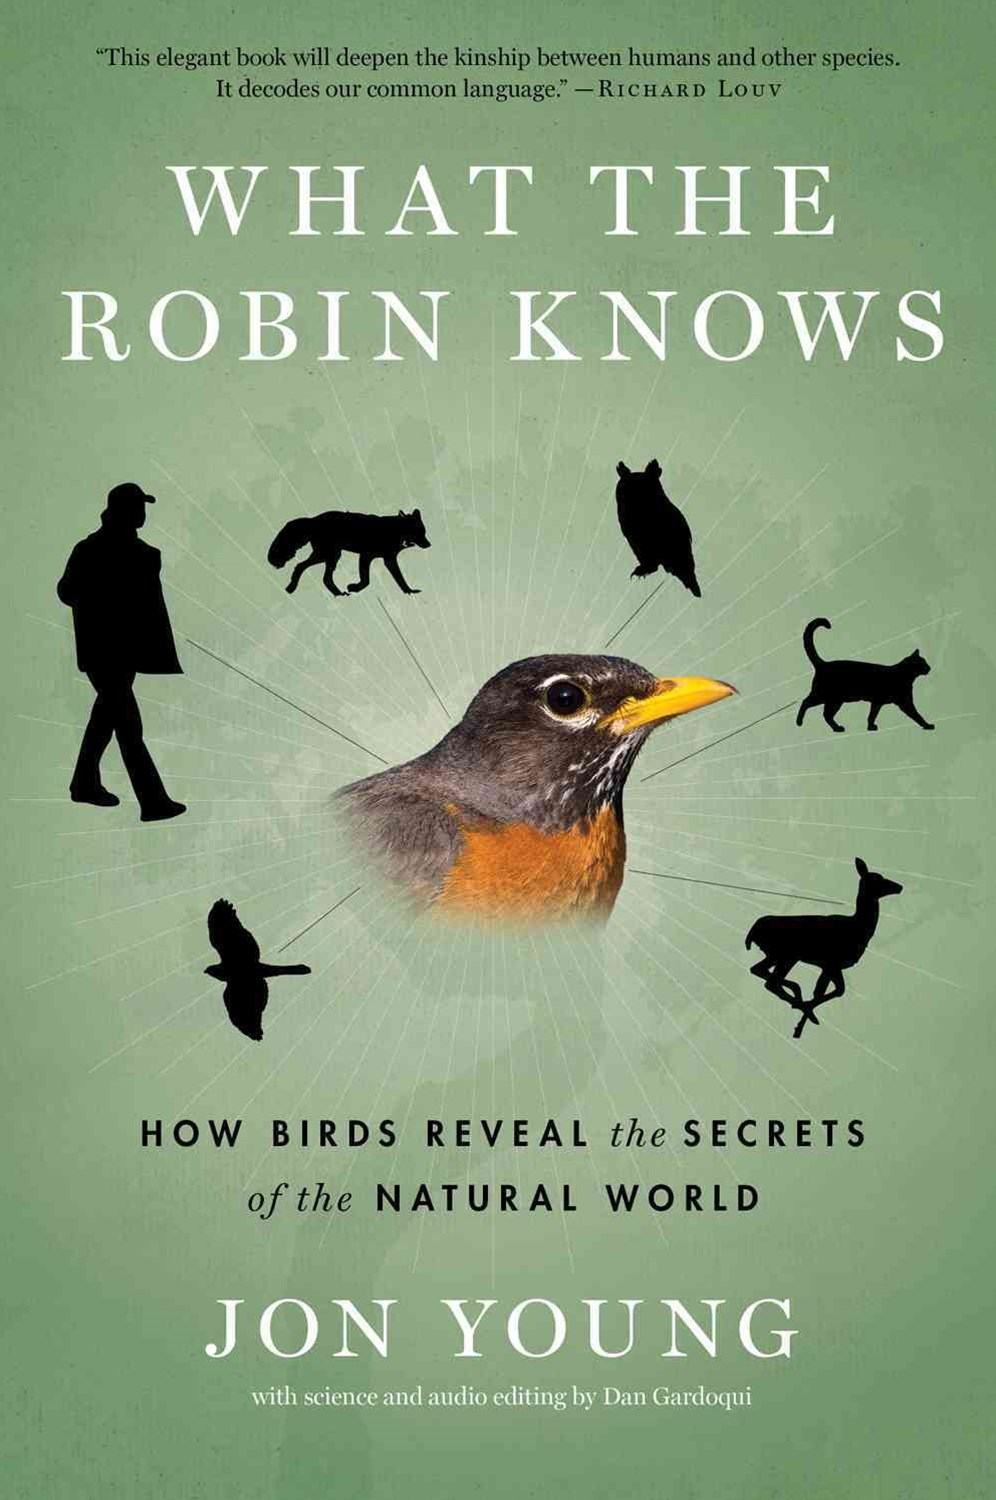 What the Robin Knows